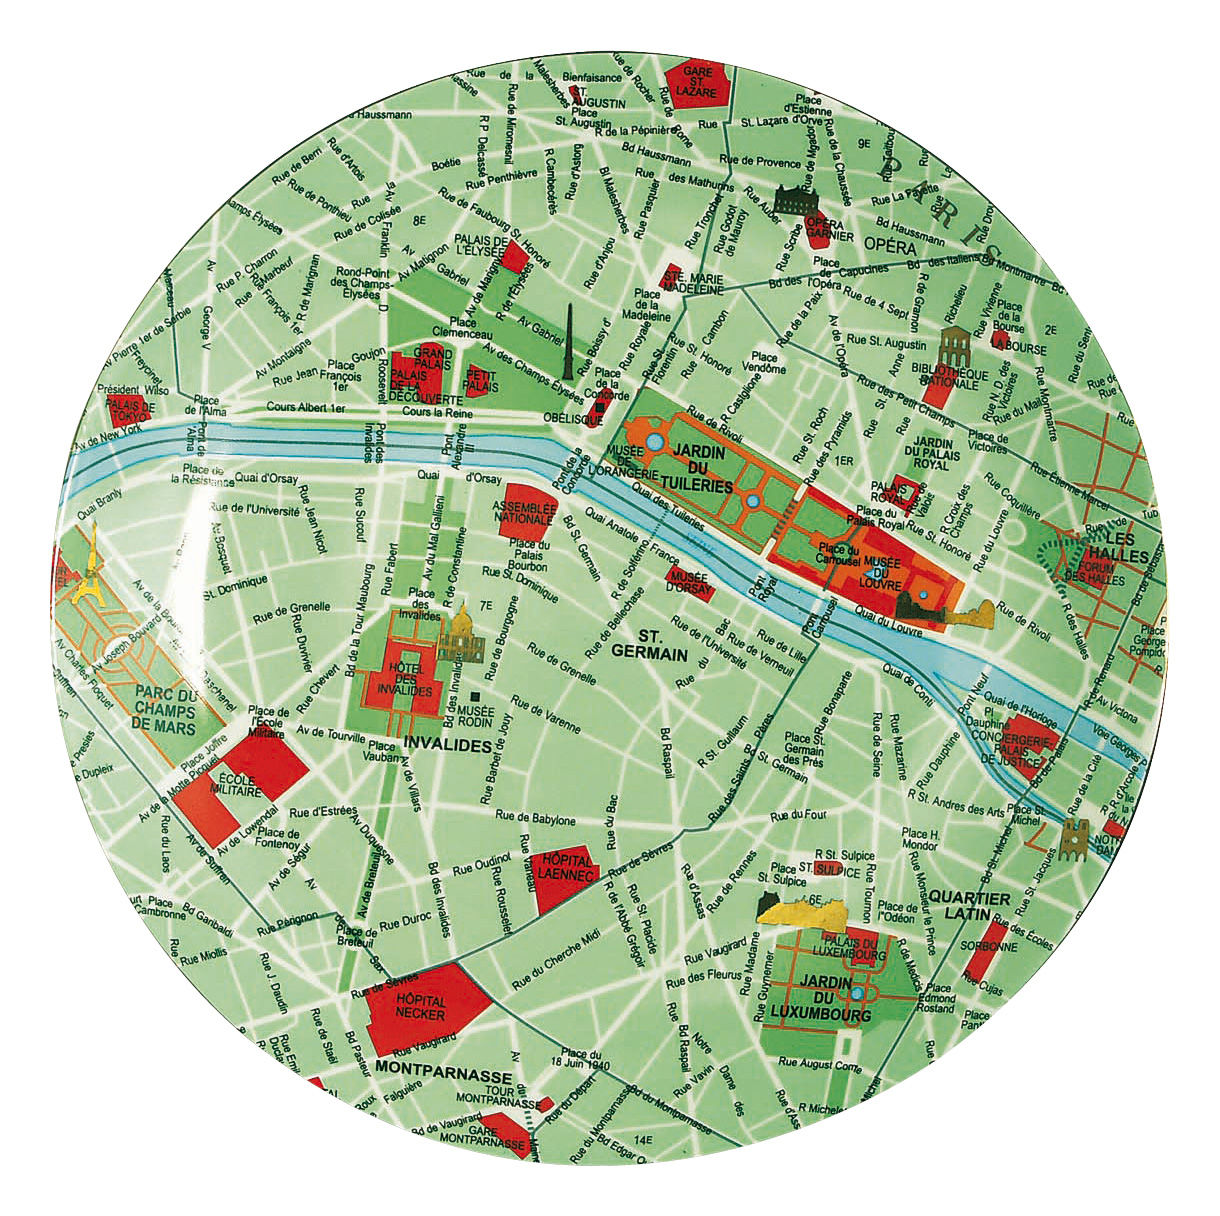 Kitchenware - Fun in the kitchen - The World Dinnerware Plate - Plate Paris by Seletti - Green, blue & red - China